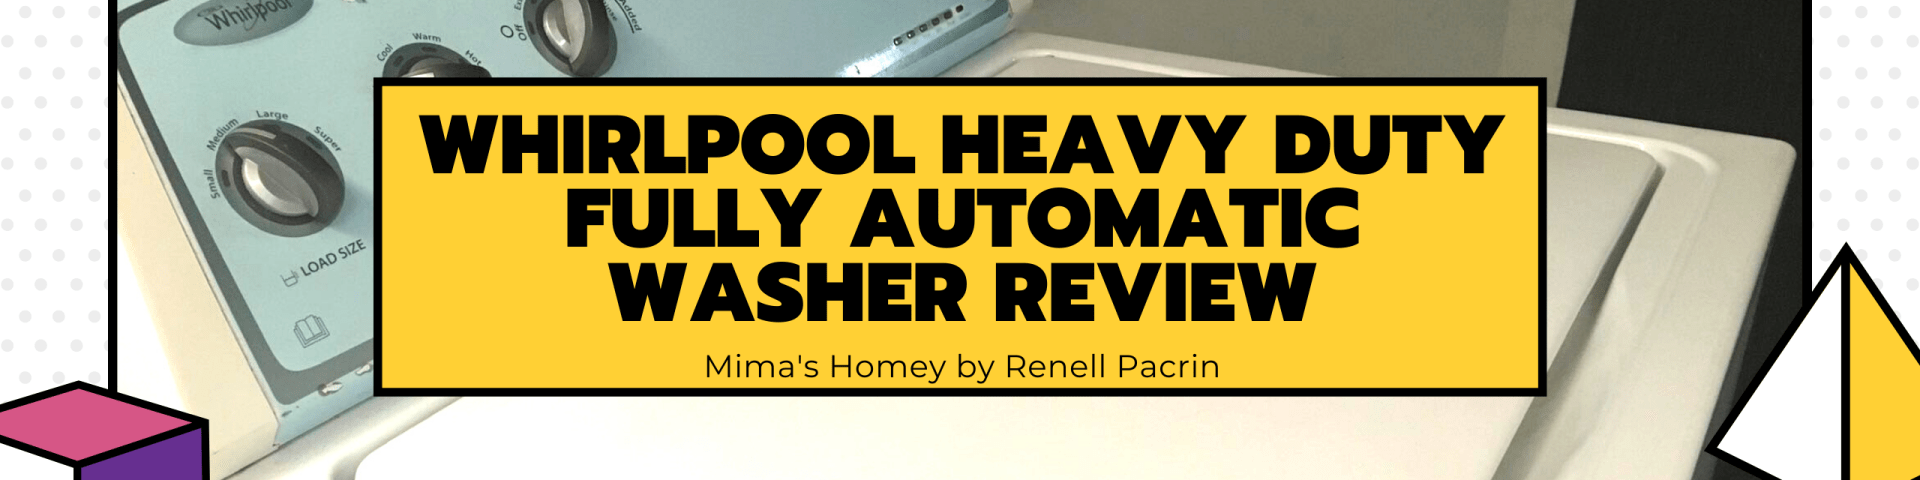 Whirlpool Heavy Duty Fully Automatic Washer Review